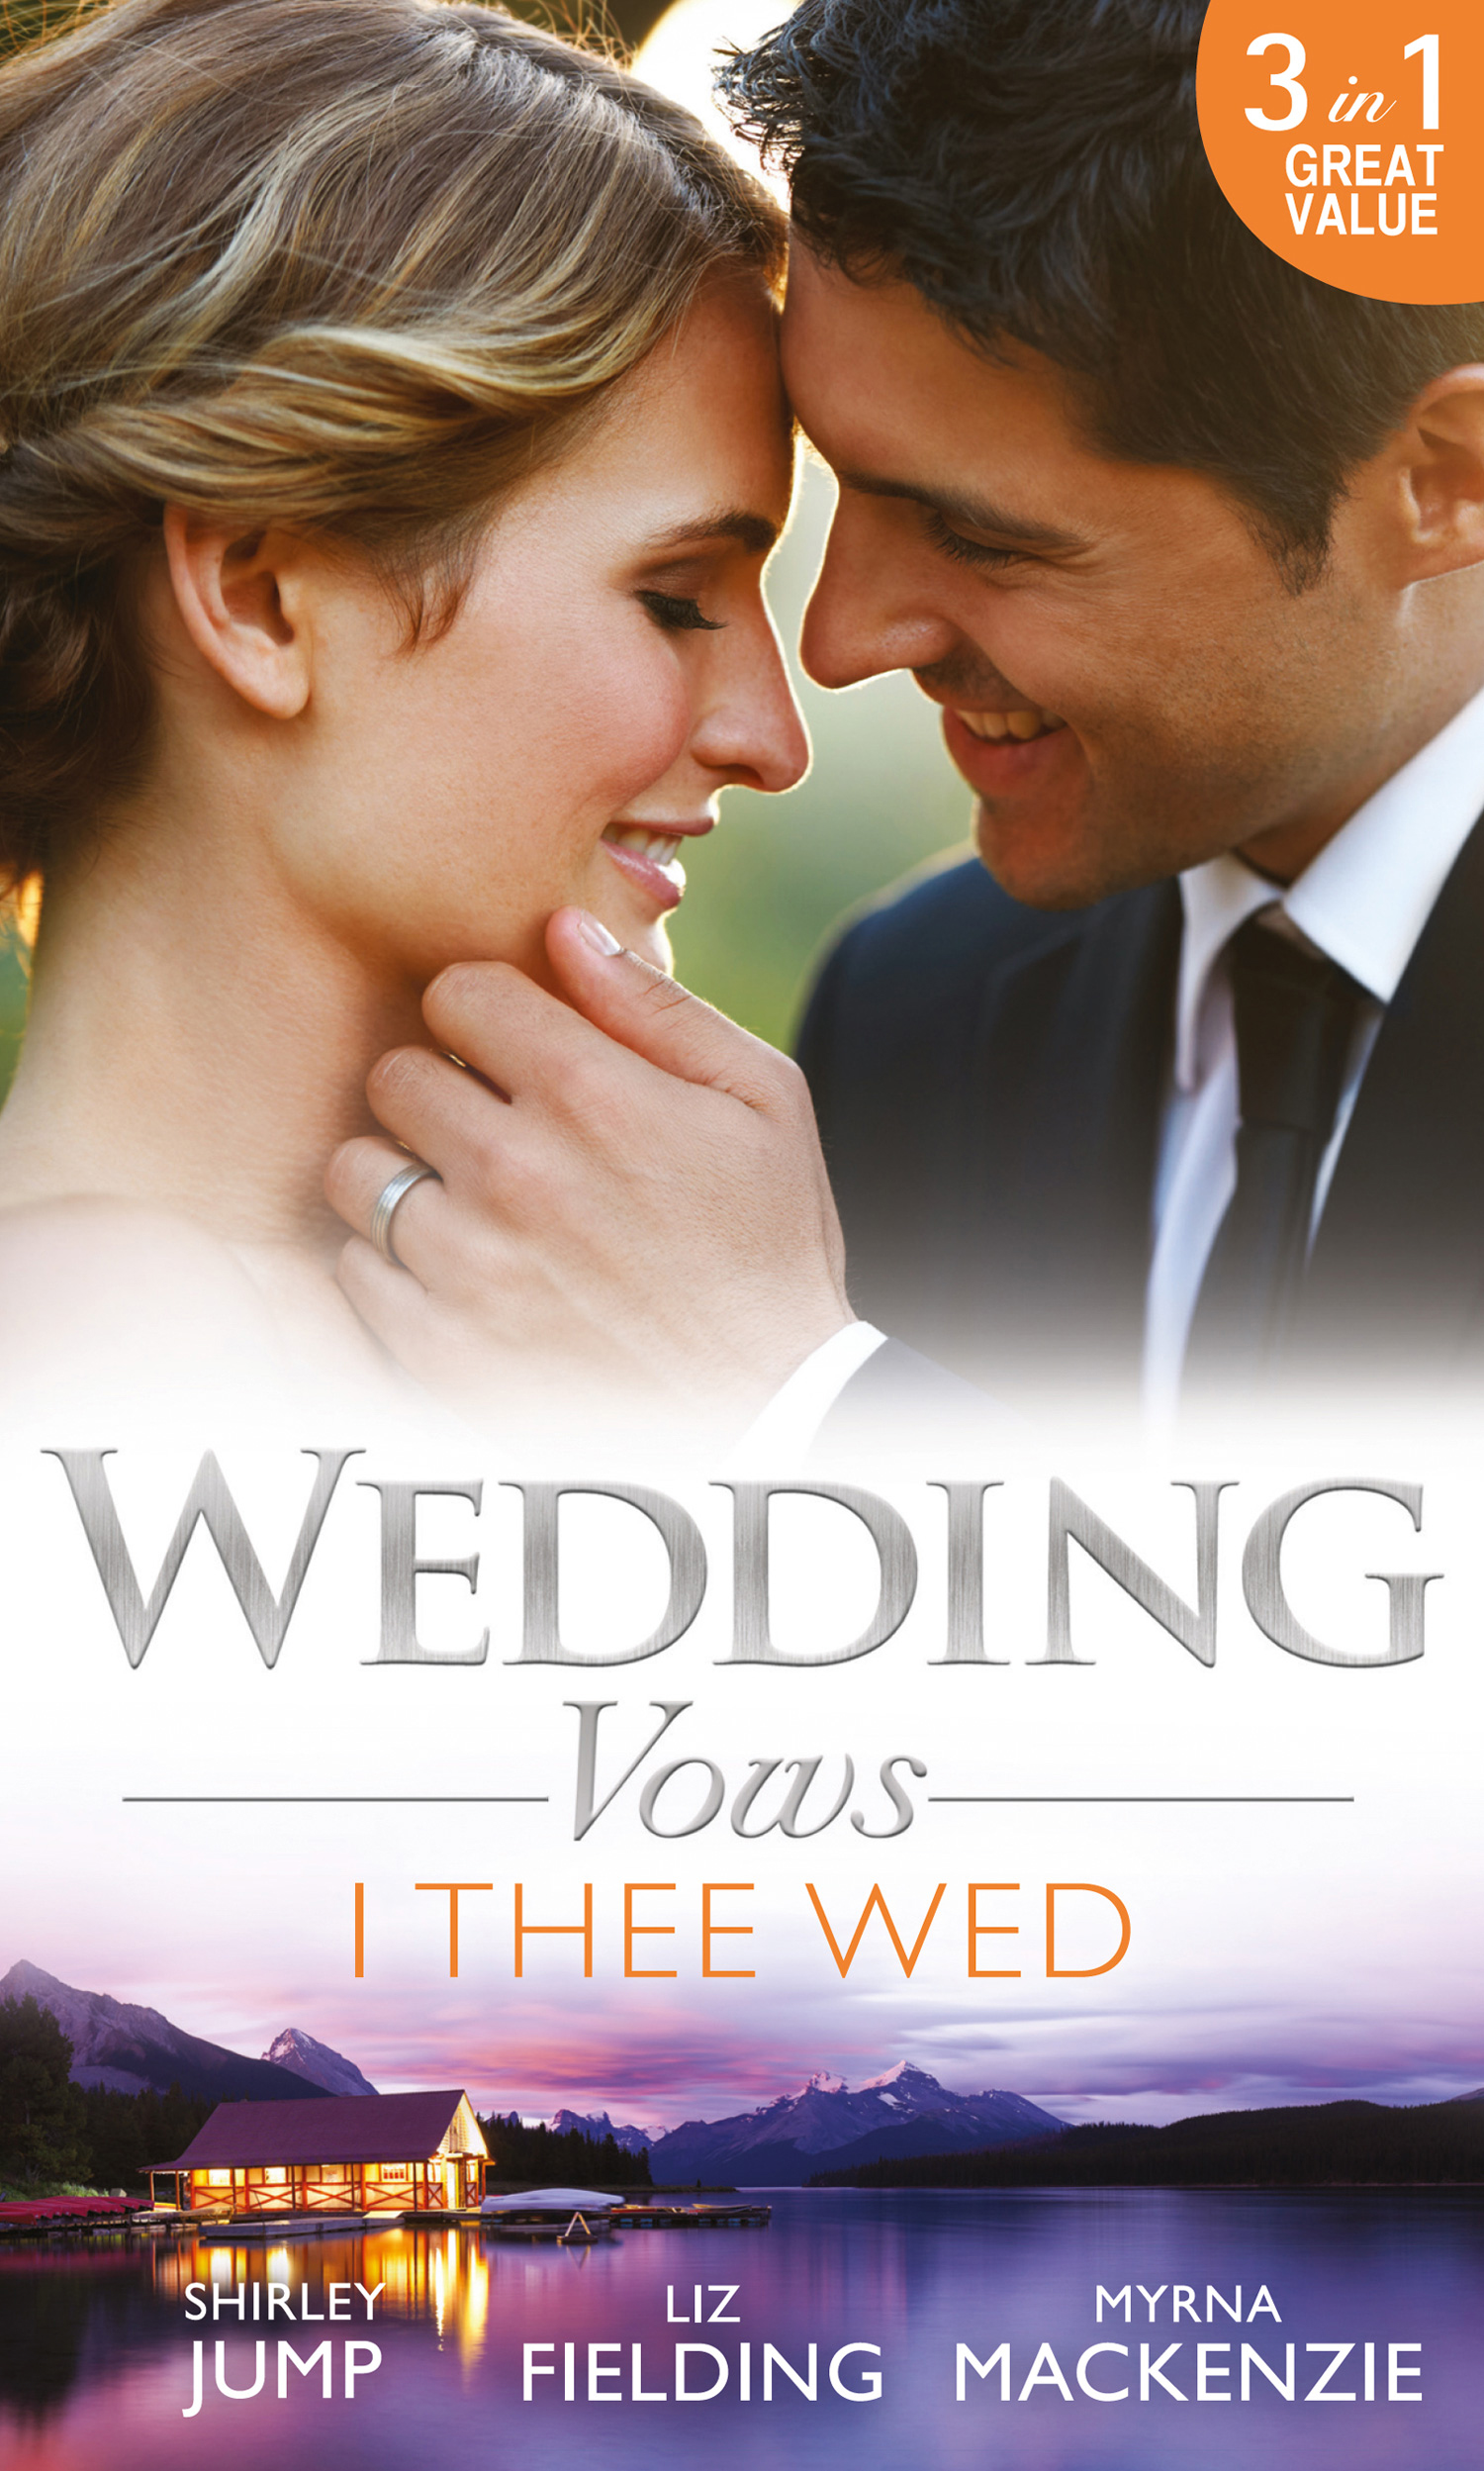 Wedding Vows: I Thee Wed